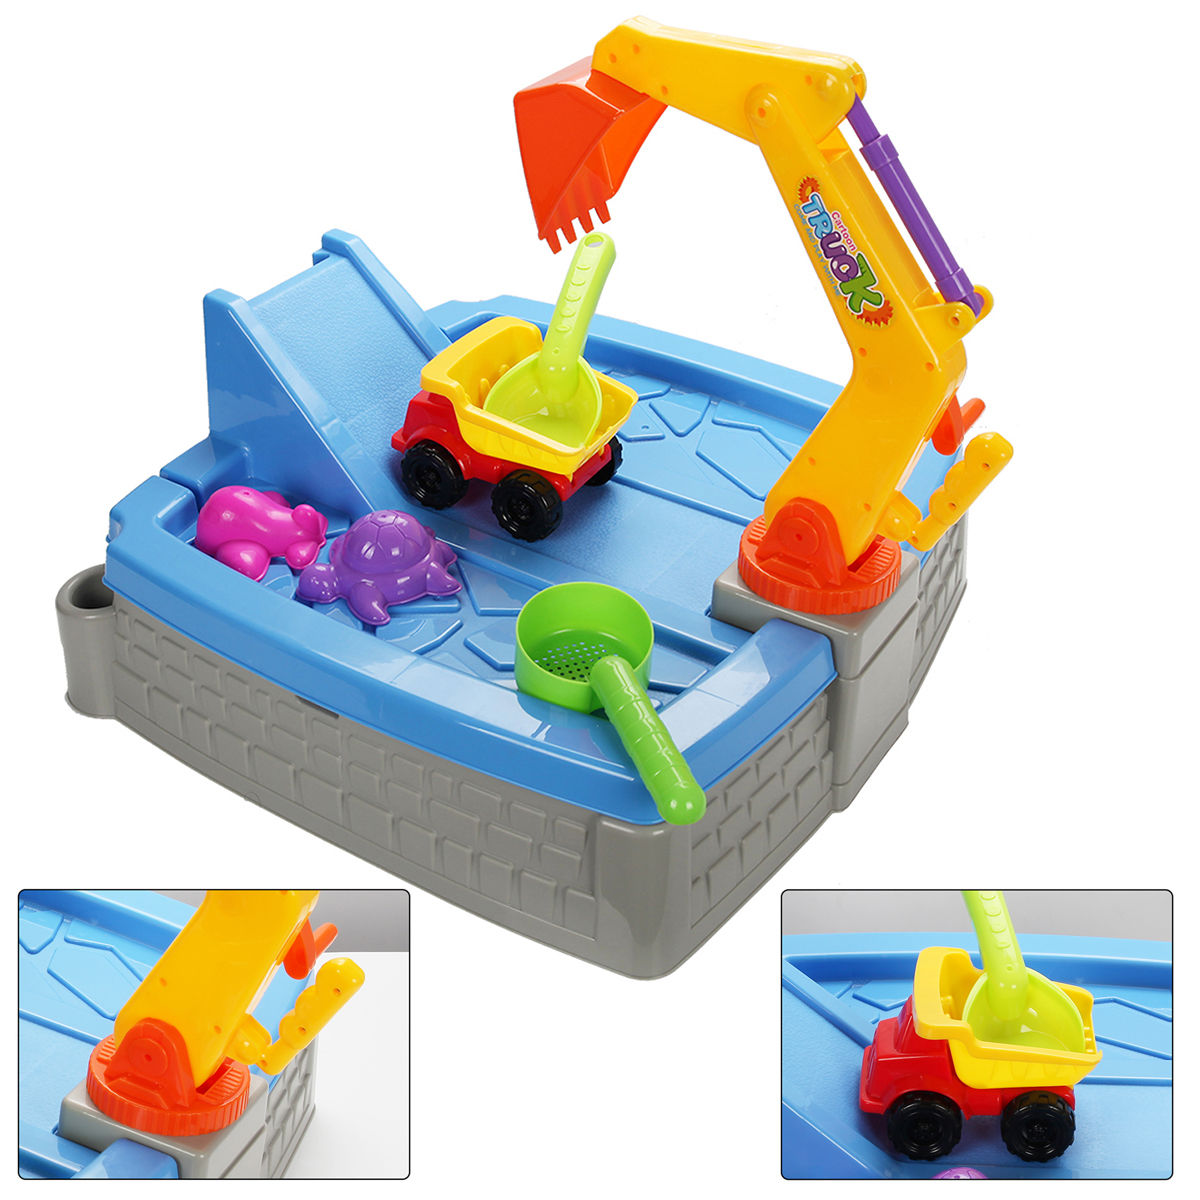 Gymax Kids Big Digger Sandbox With Cover Activity Outdoor Play Set Toy Walmart